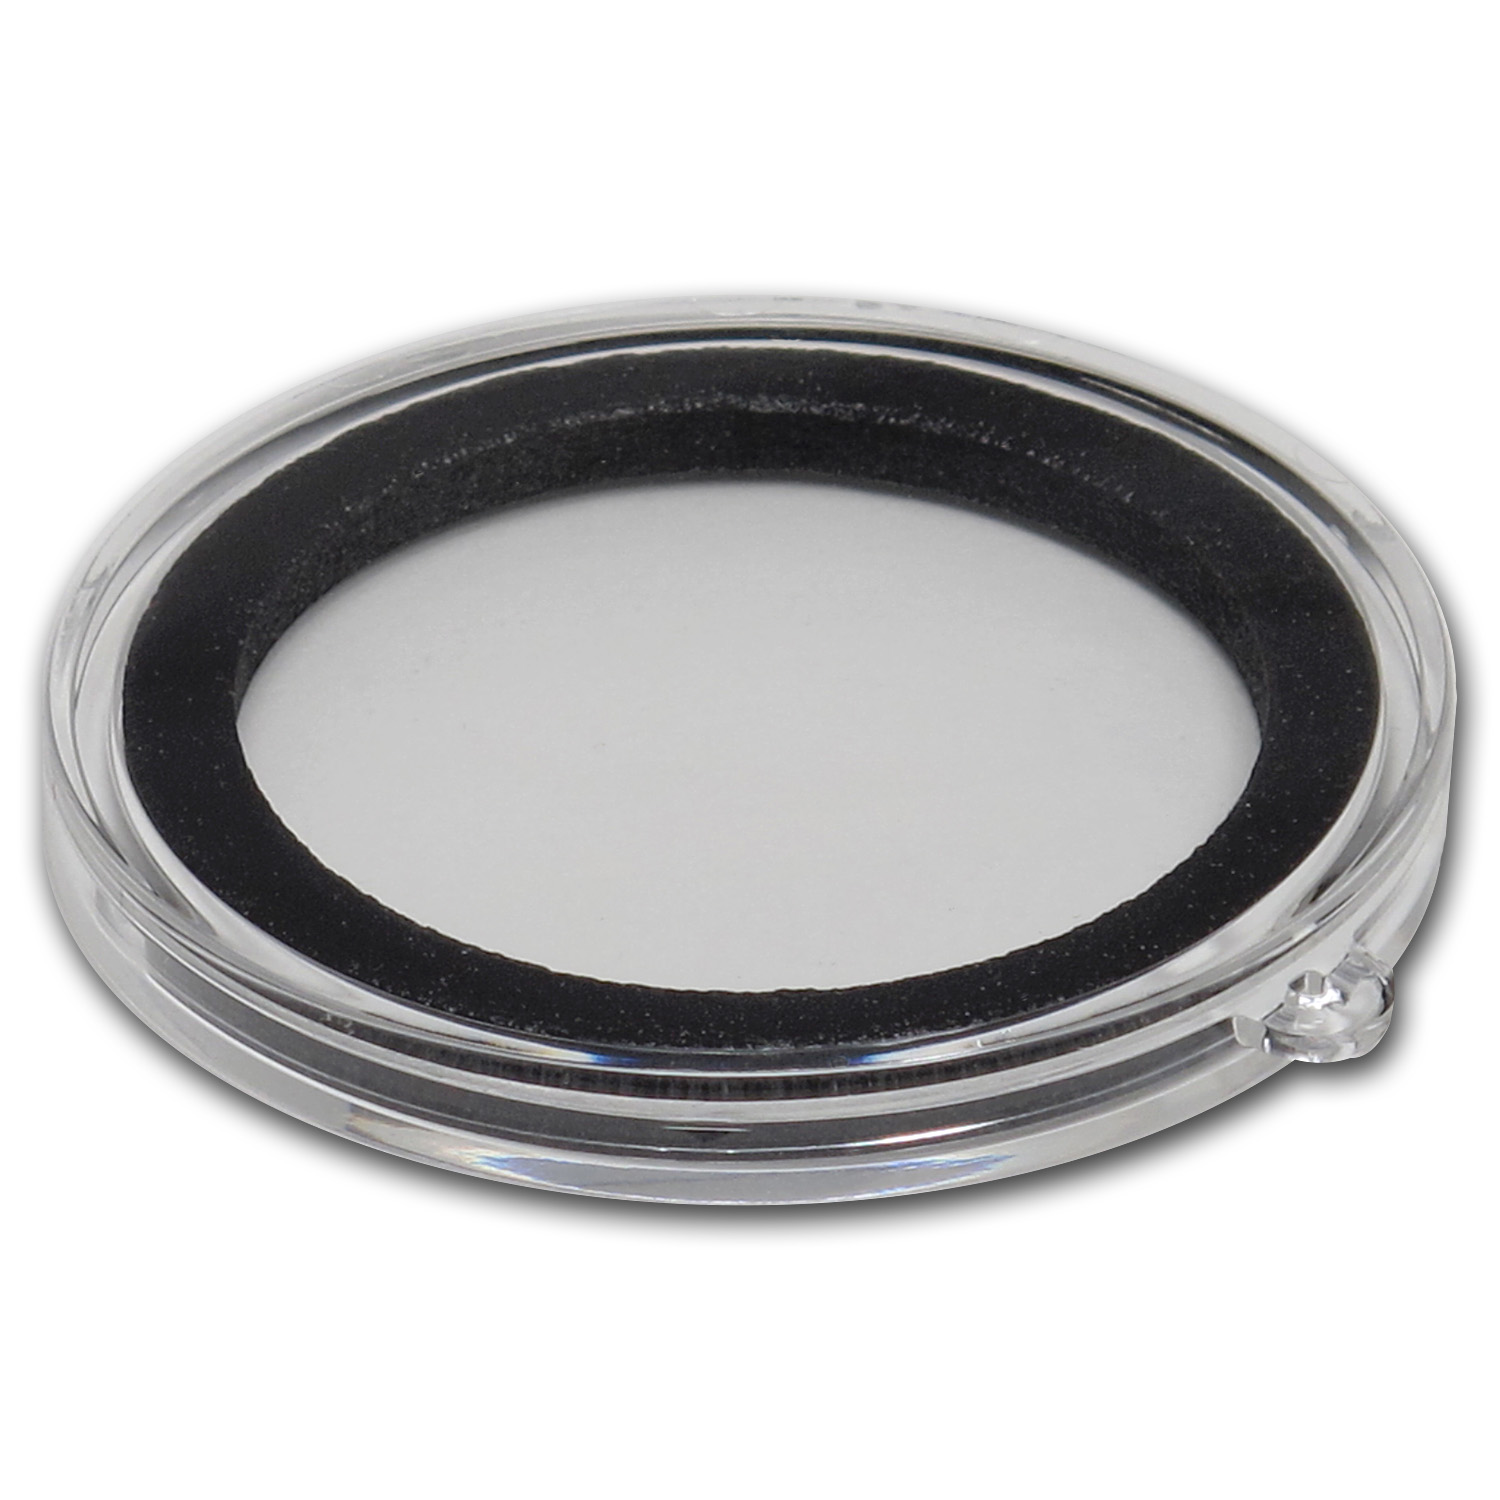 Ornament Capsule for Silver Rounds - 38mm (Black Ring)